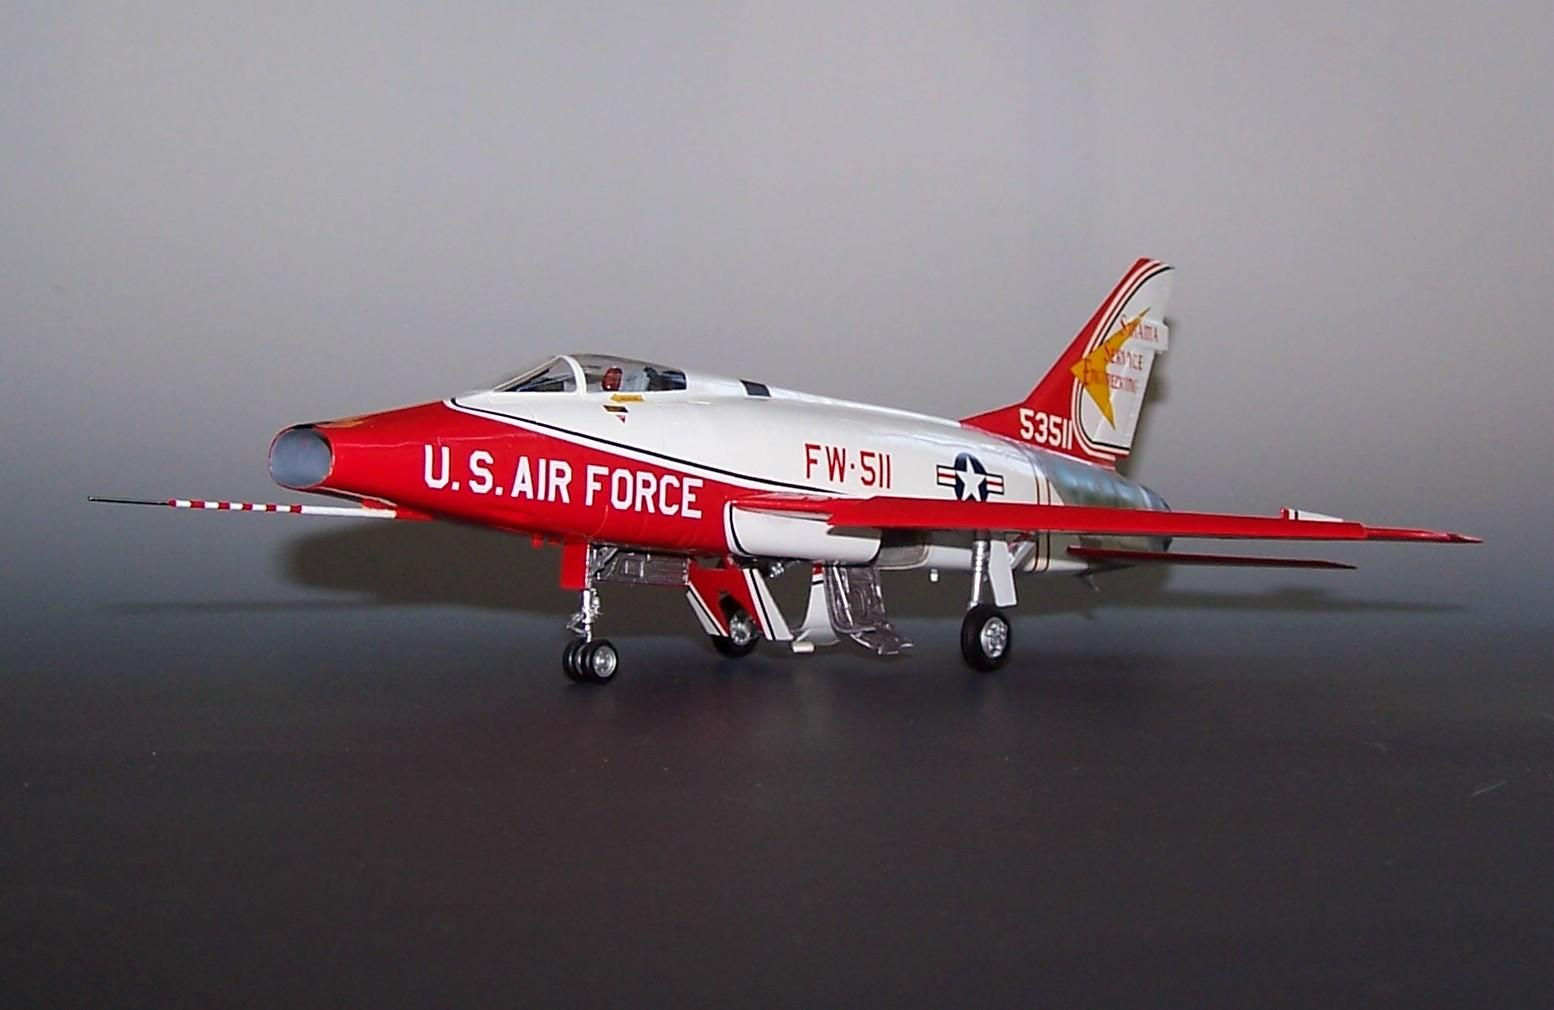 Photo of Super Sabre #55-3511 in SMAMA Colors. 